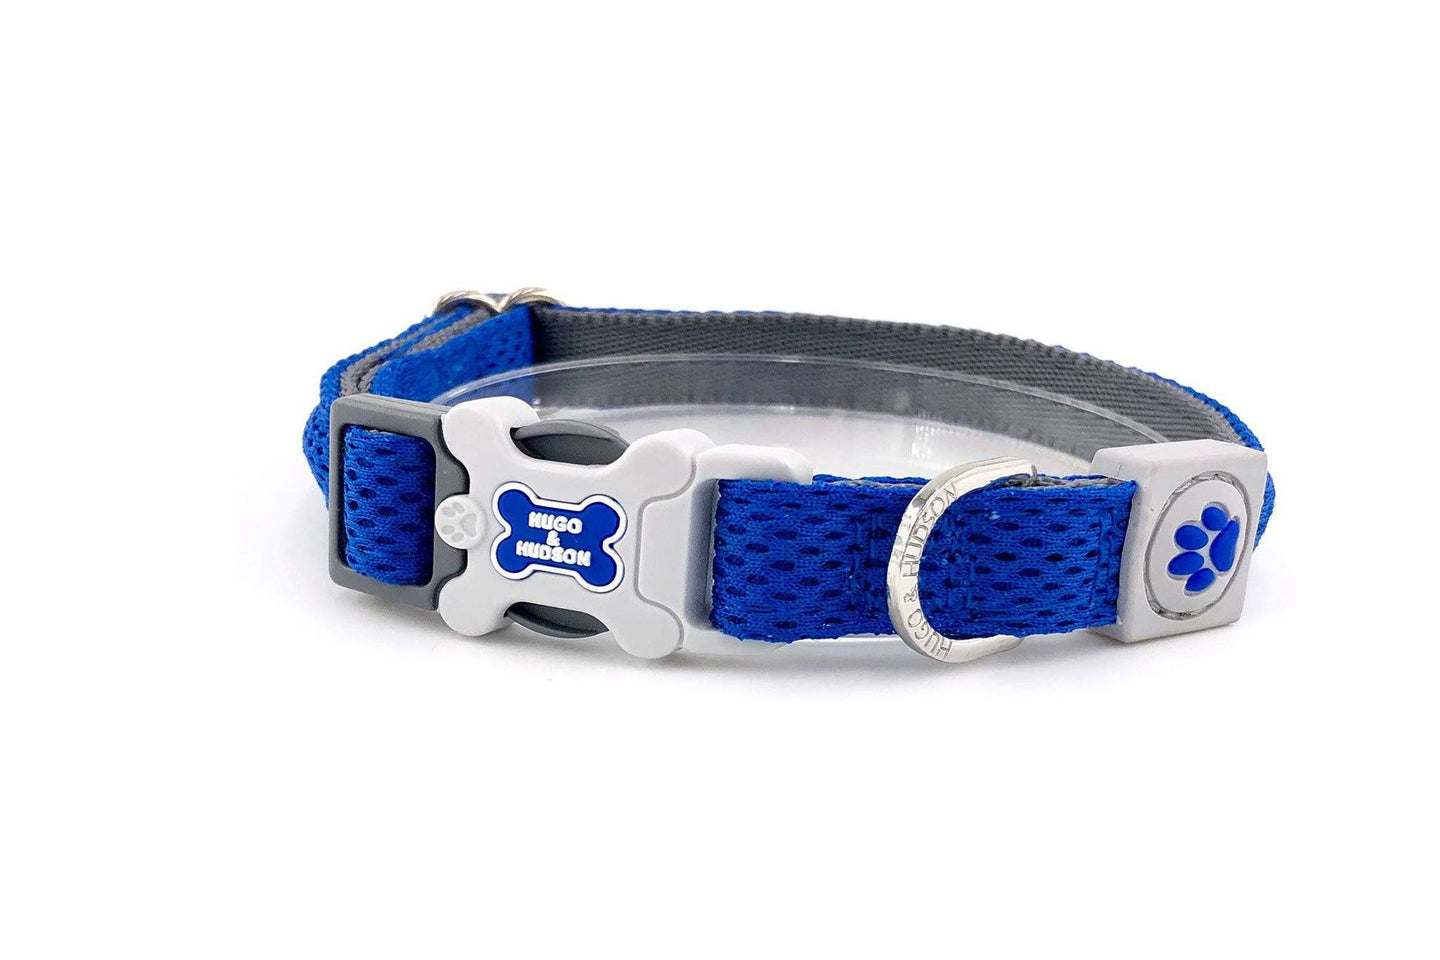 Breathable Mesh Dog Leash & Collar - Blue Mesh Collar & Lead Combination